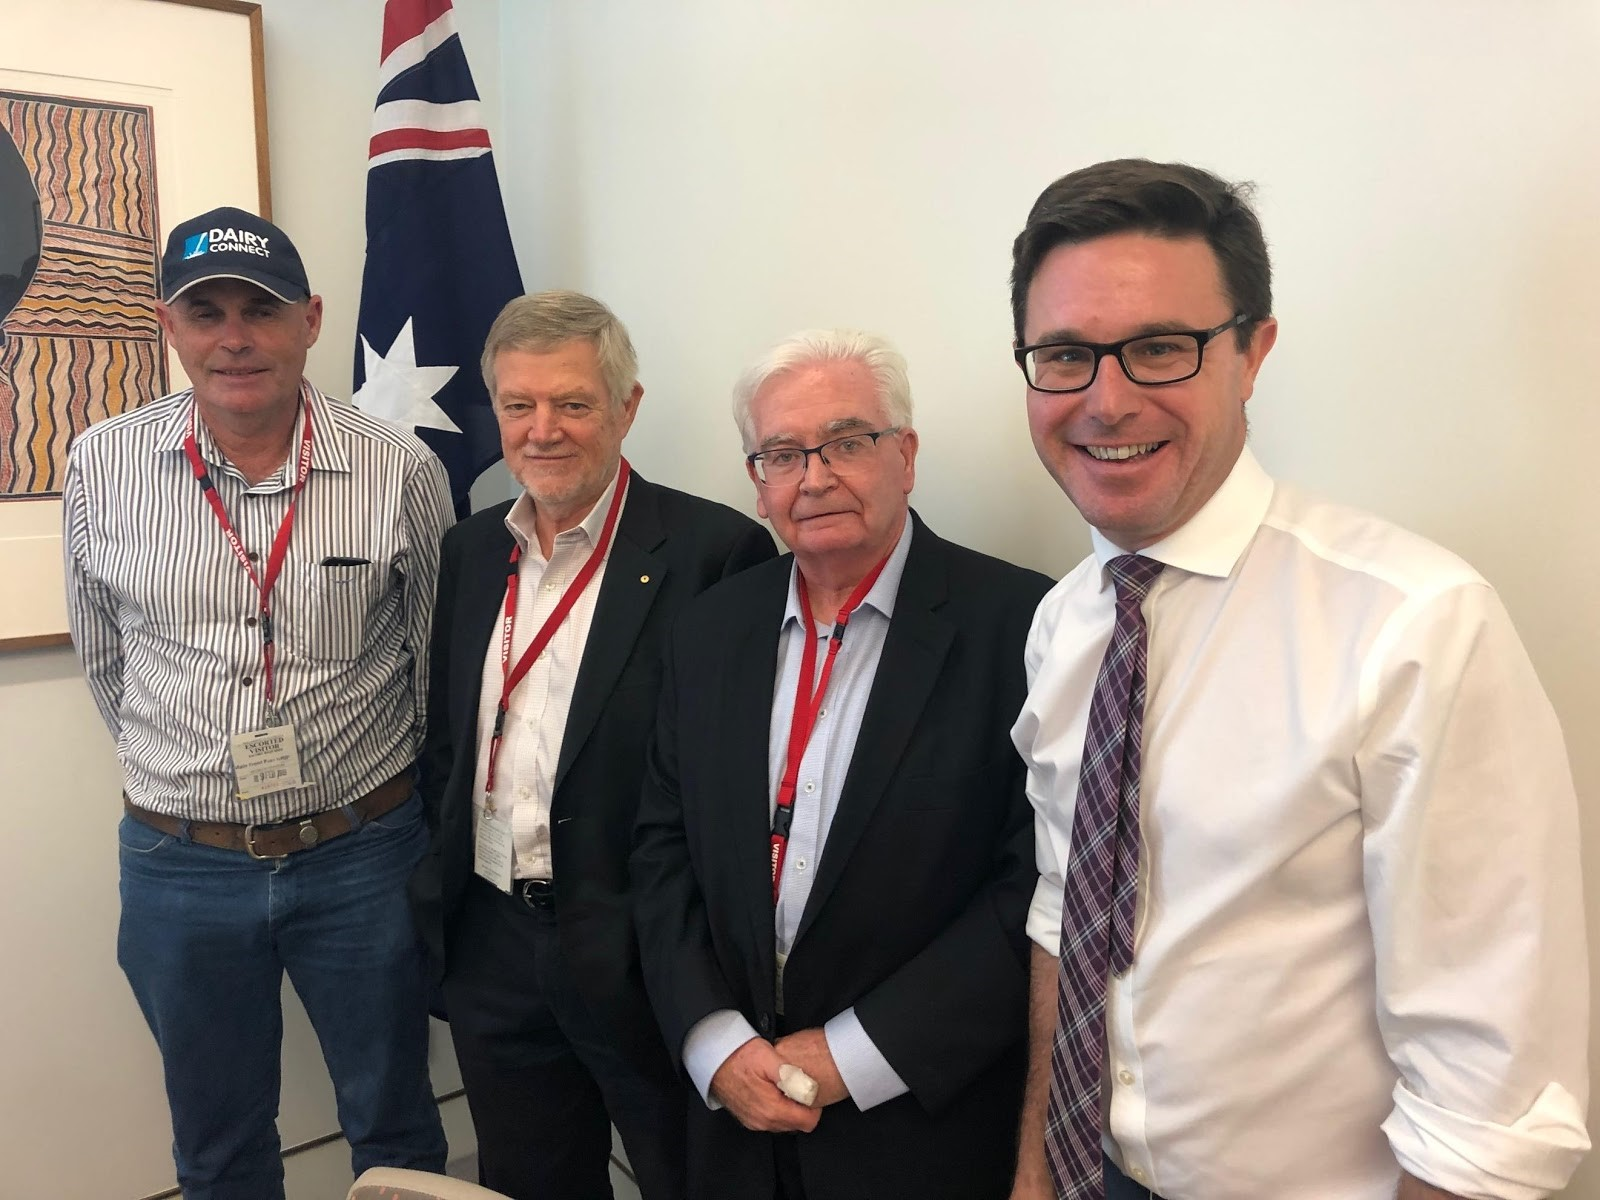 L-R: Graham Forbes, DC Farmers Group President & dairy farmer, Gloucester; George Davey AM, DC Chairman; Chris Sharpe, Managing Director, Richmond Dairies; the Hon David Littleproud MP